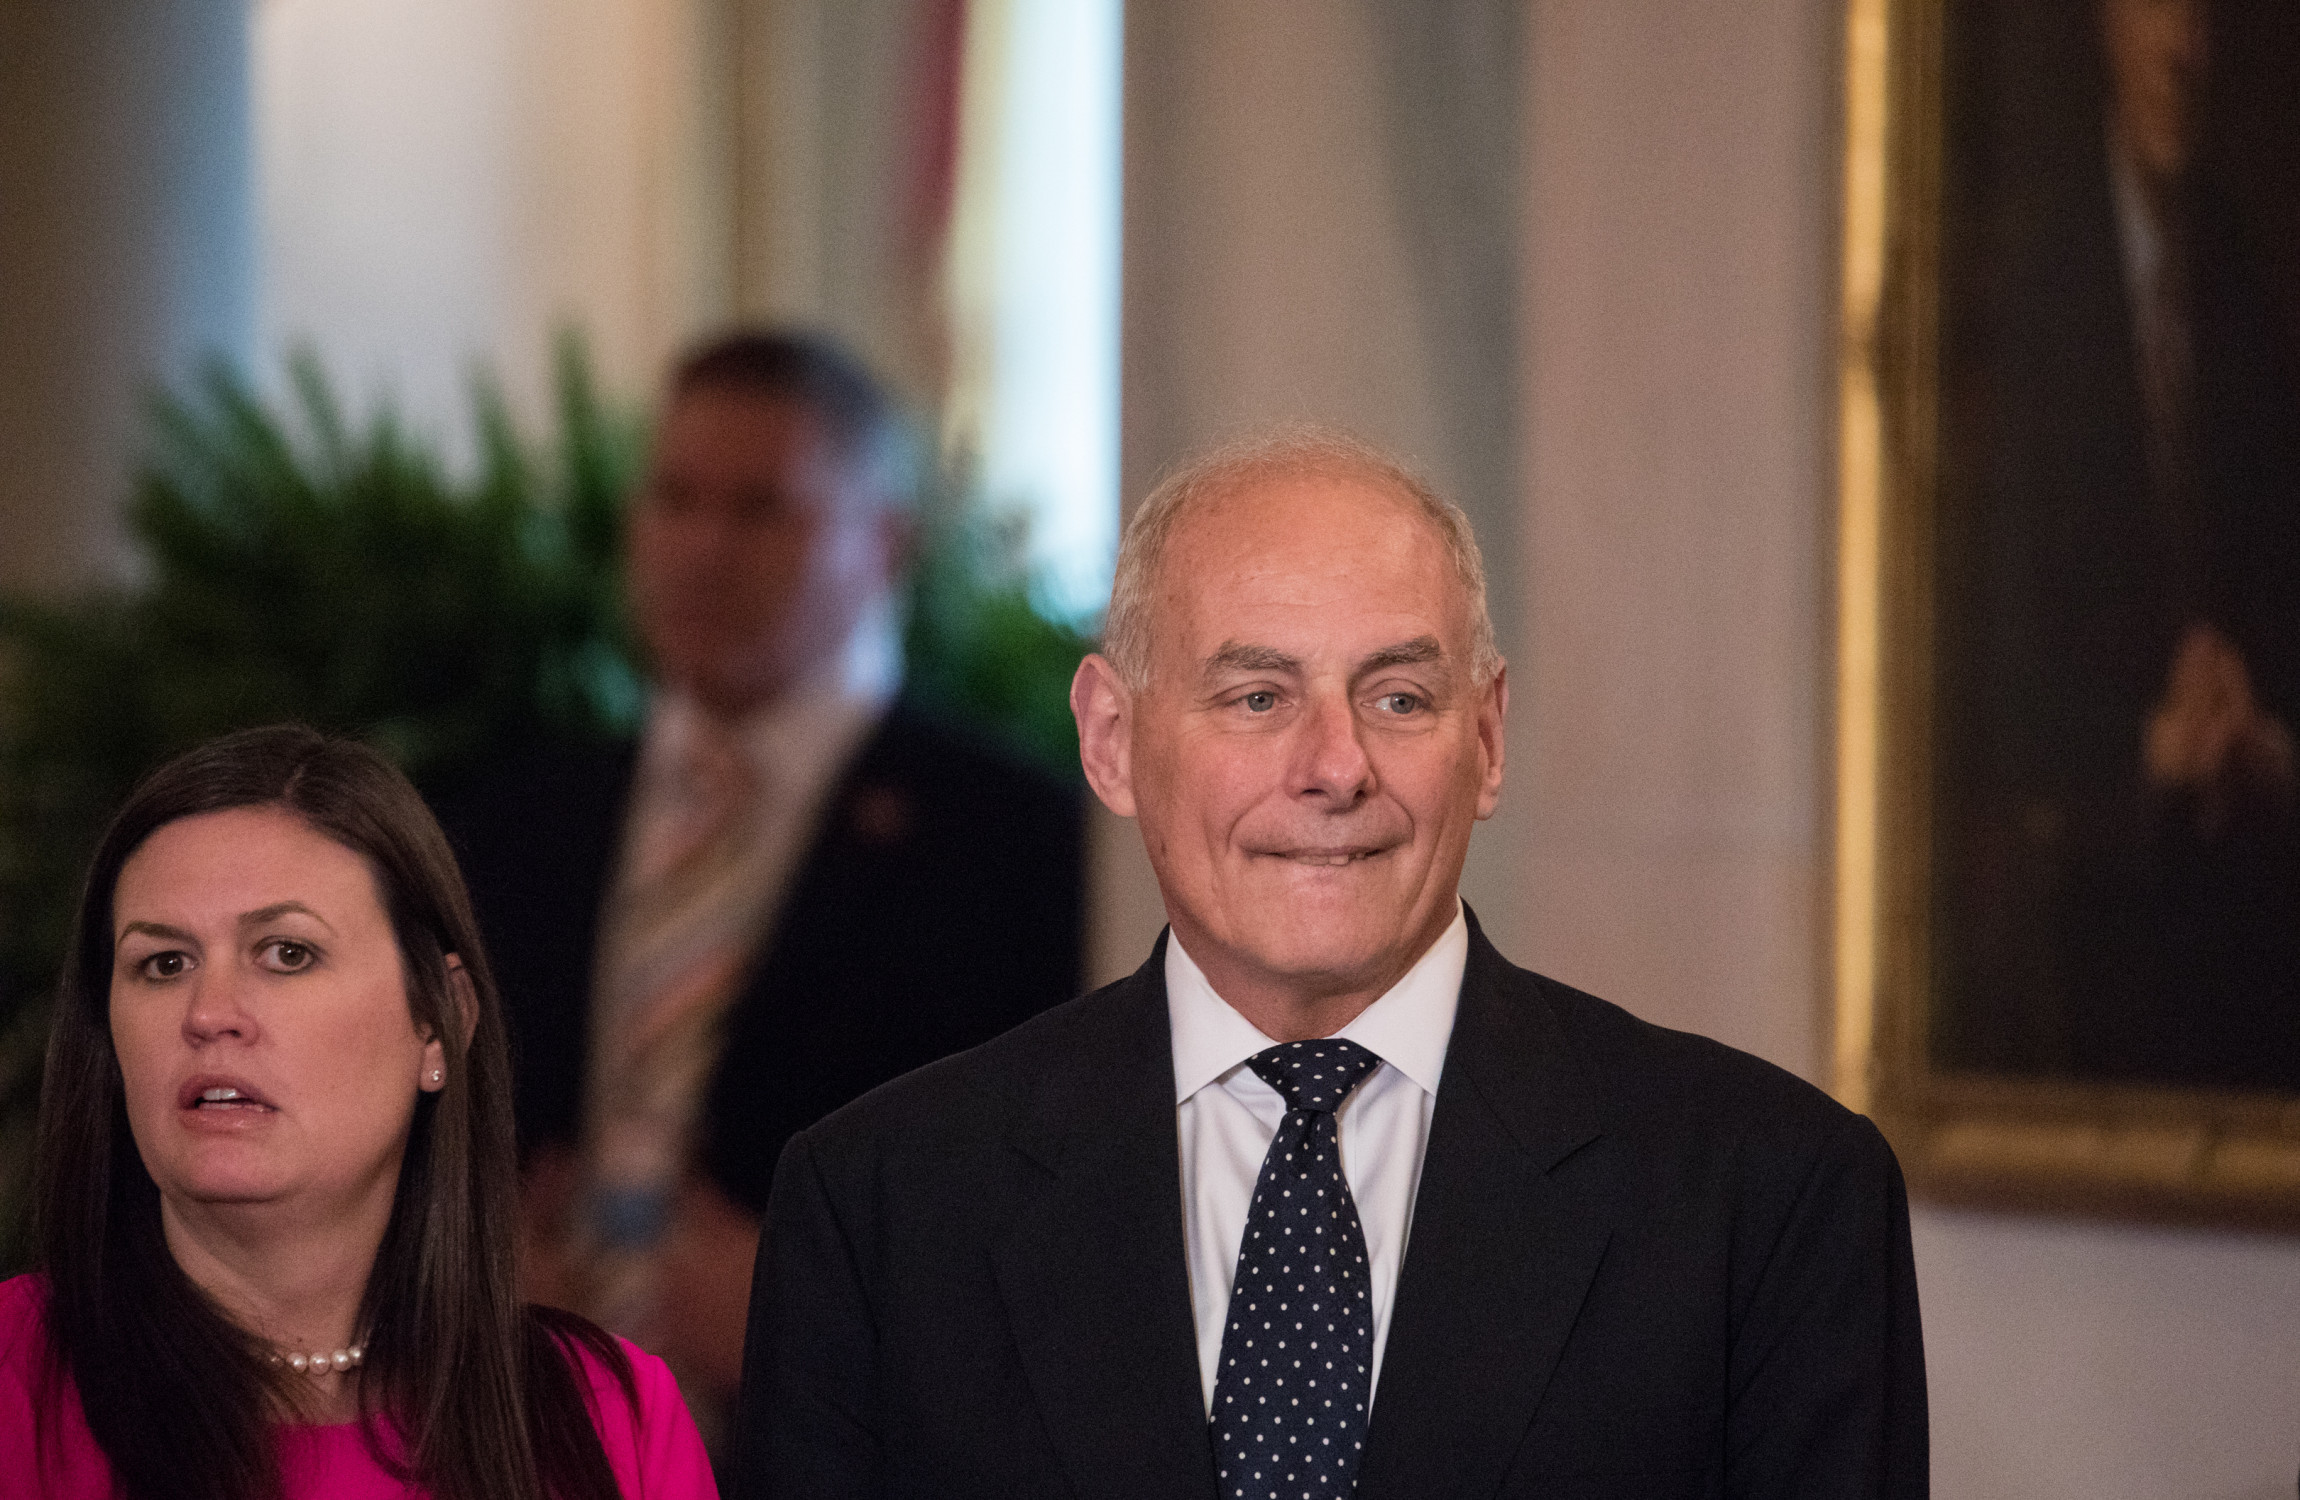 Trump dismisses rift with WH Chief of Staff Kelly as